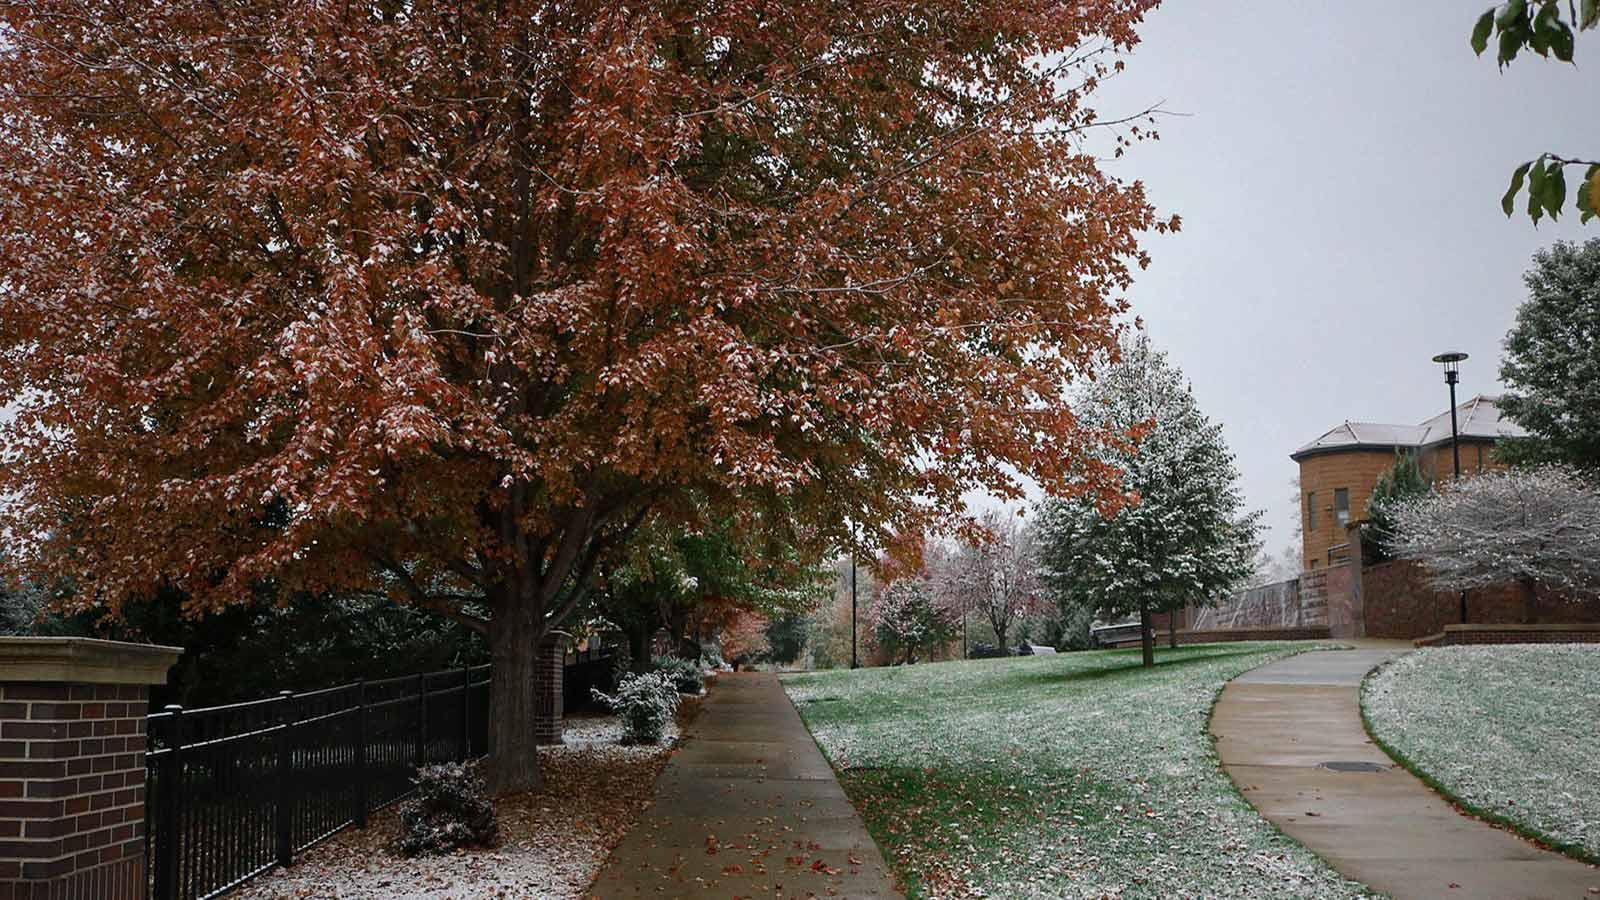 Photo of tree with orange leaves and light snowfall on Morningside's campus taken by Rebekah Meisner.